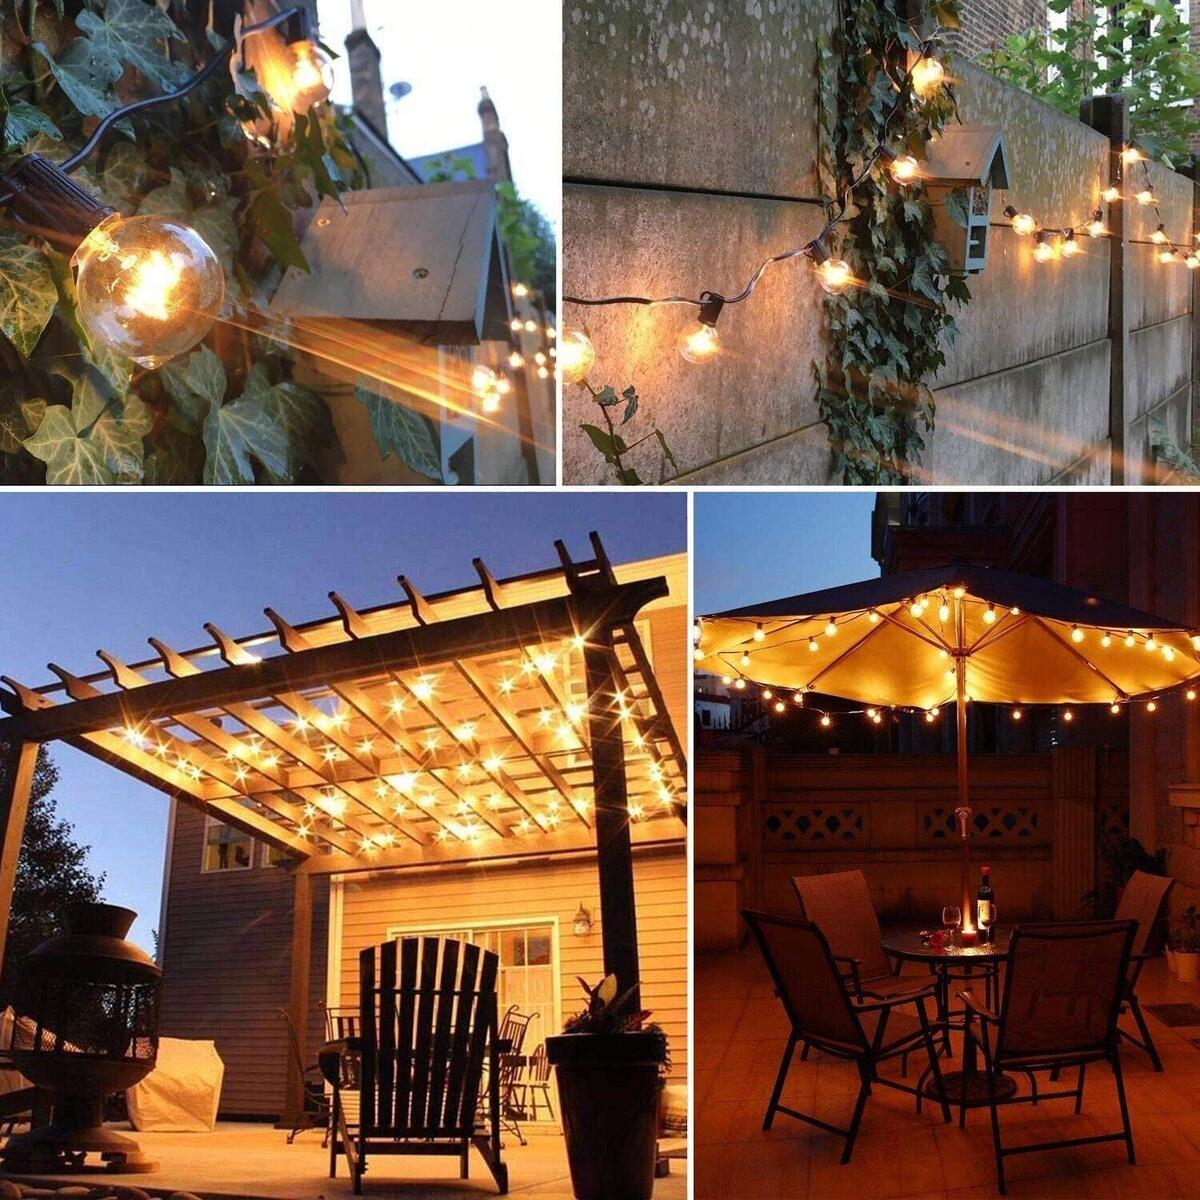 Solar Powered LED Outdoor String Lights, Hanging Retro Edison Filament Bulbs, 25 Bulbs per Strand, 4400-mAh, Weatherproof, 27 Ft Globe Lights Create Bistro Ambience in Your Yard, Pergola, by Wixann